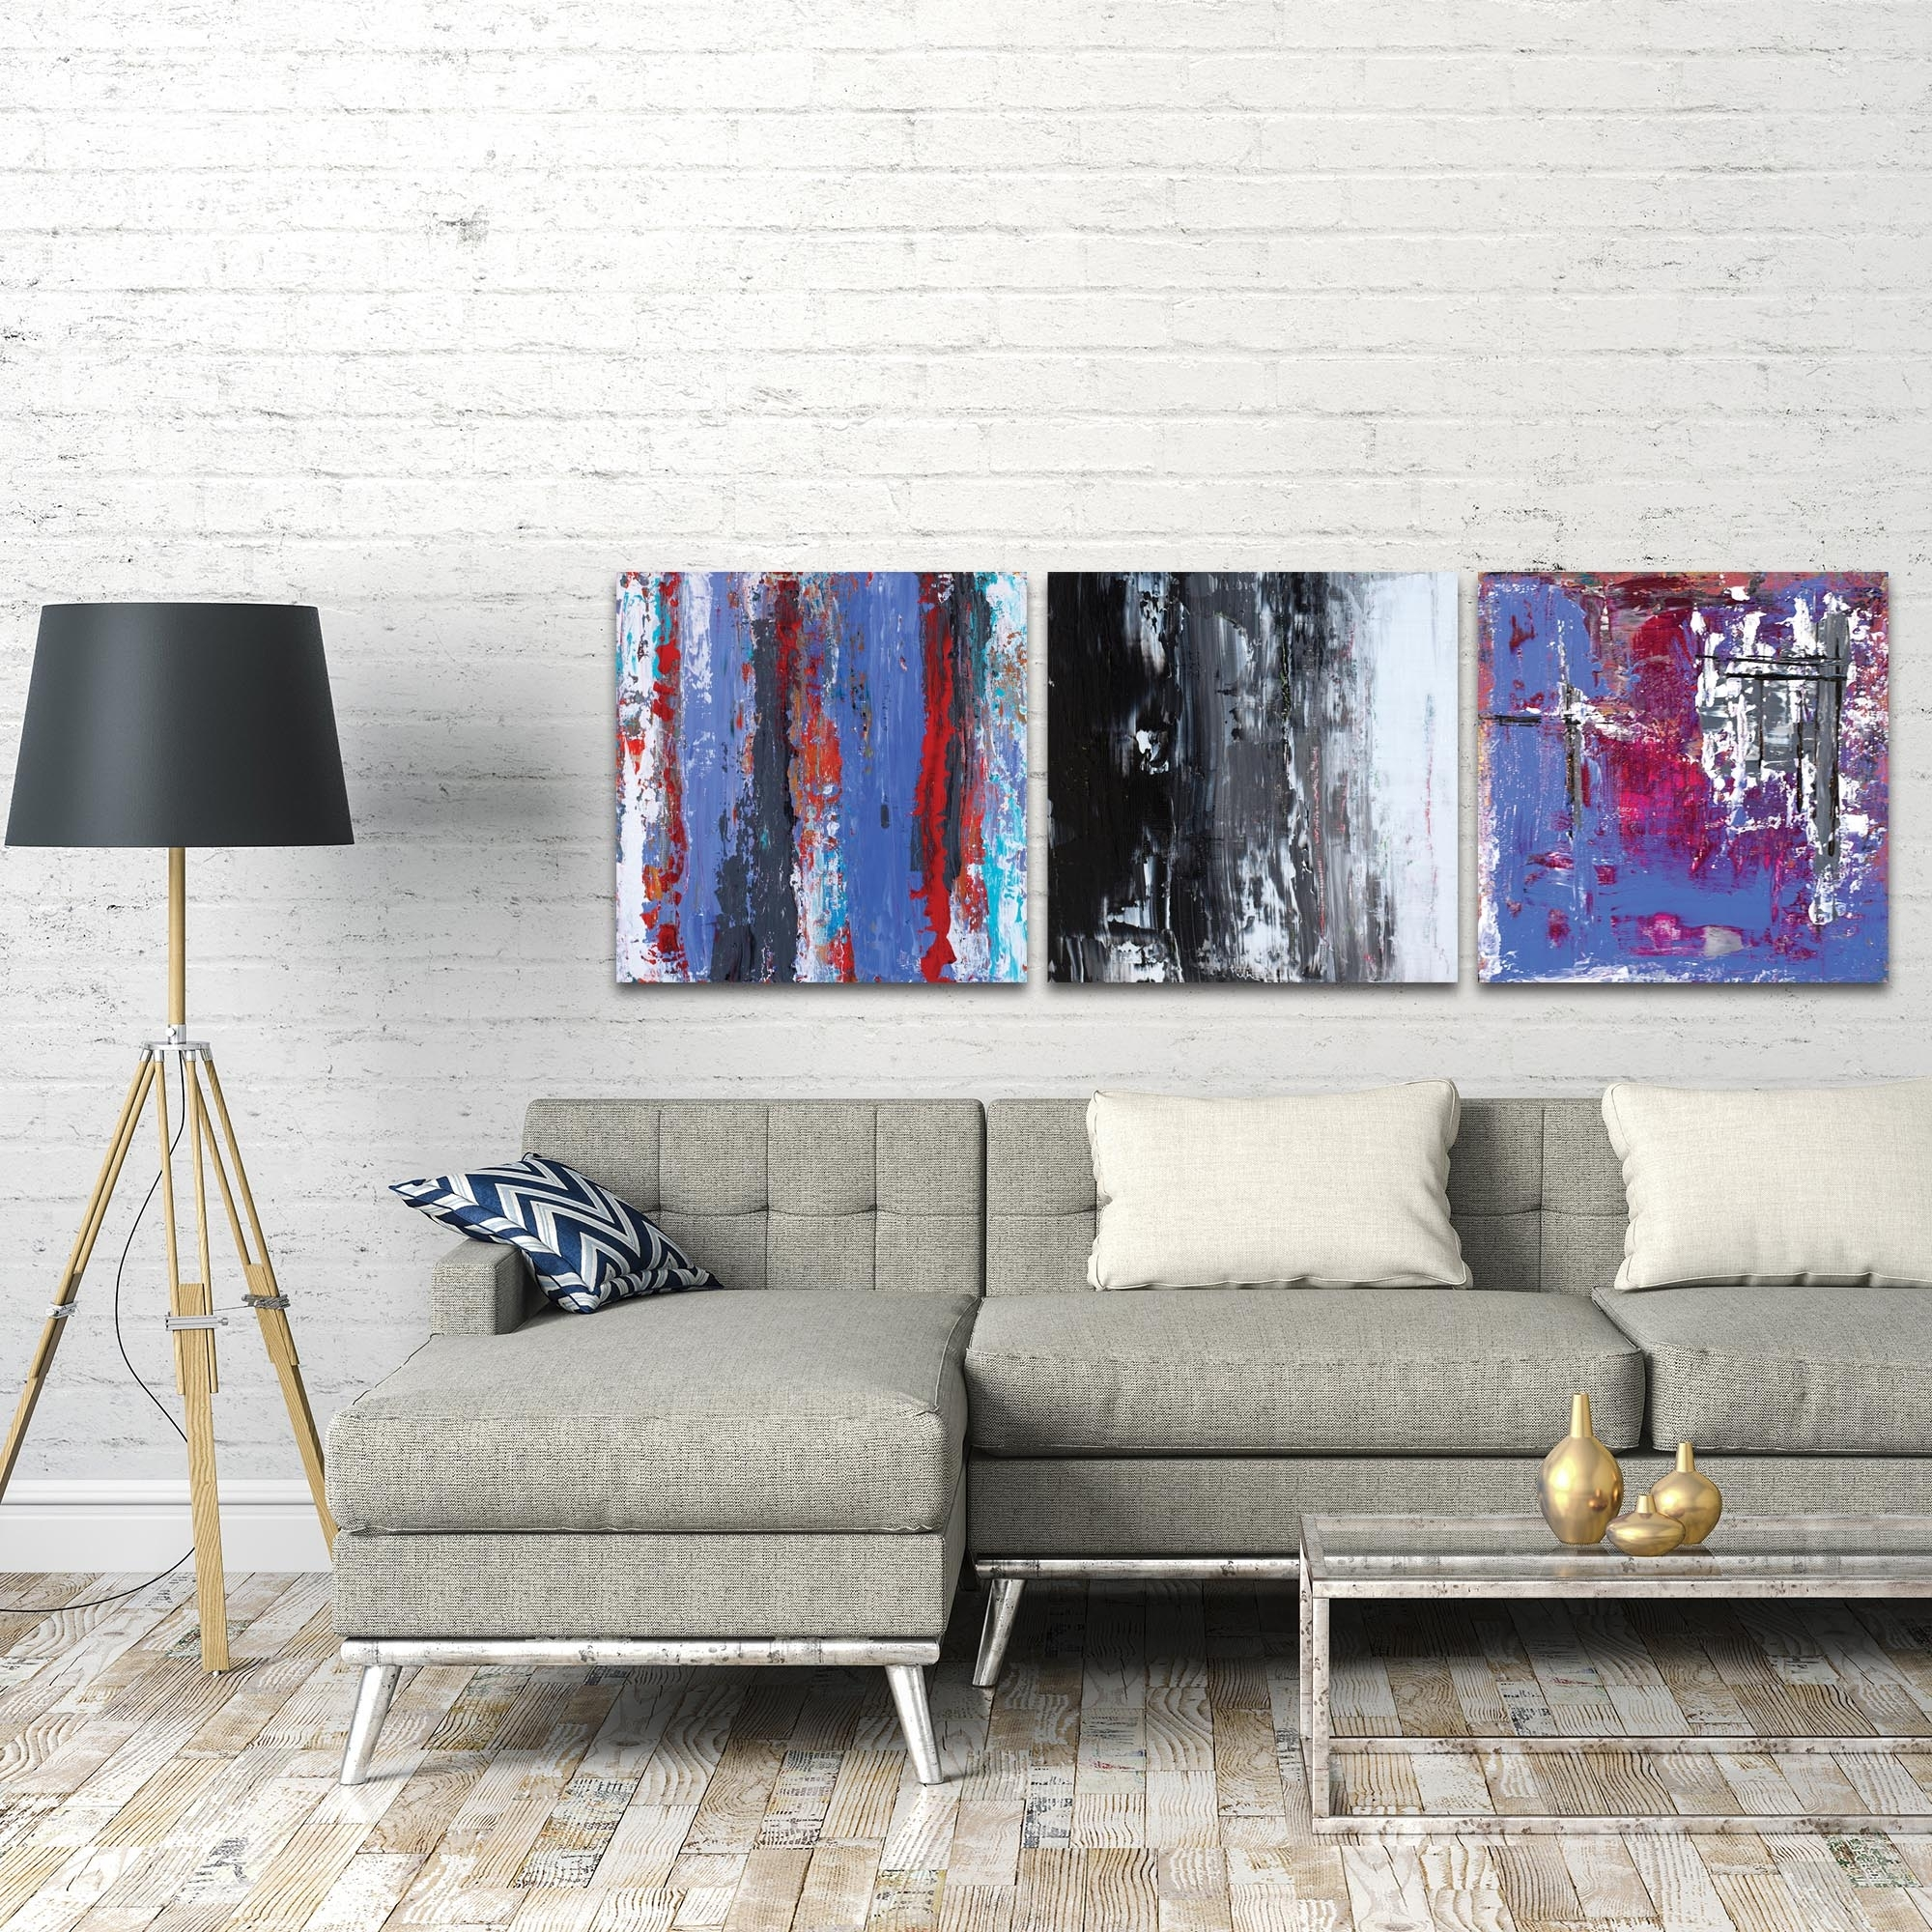 Metal Art Studio – Urban Triptych 4 Largeceleste Reiter With Regard To Most Recently Released Triptych Wall Art (View 13 of 20)